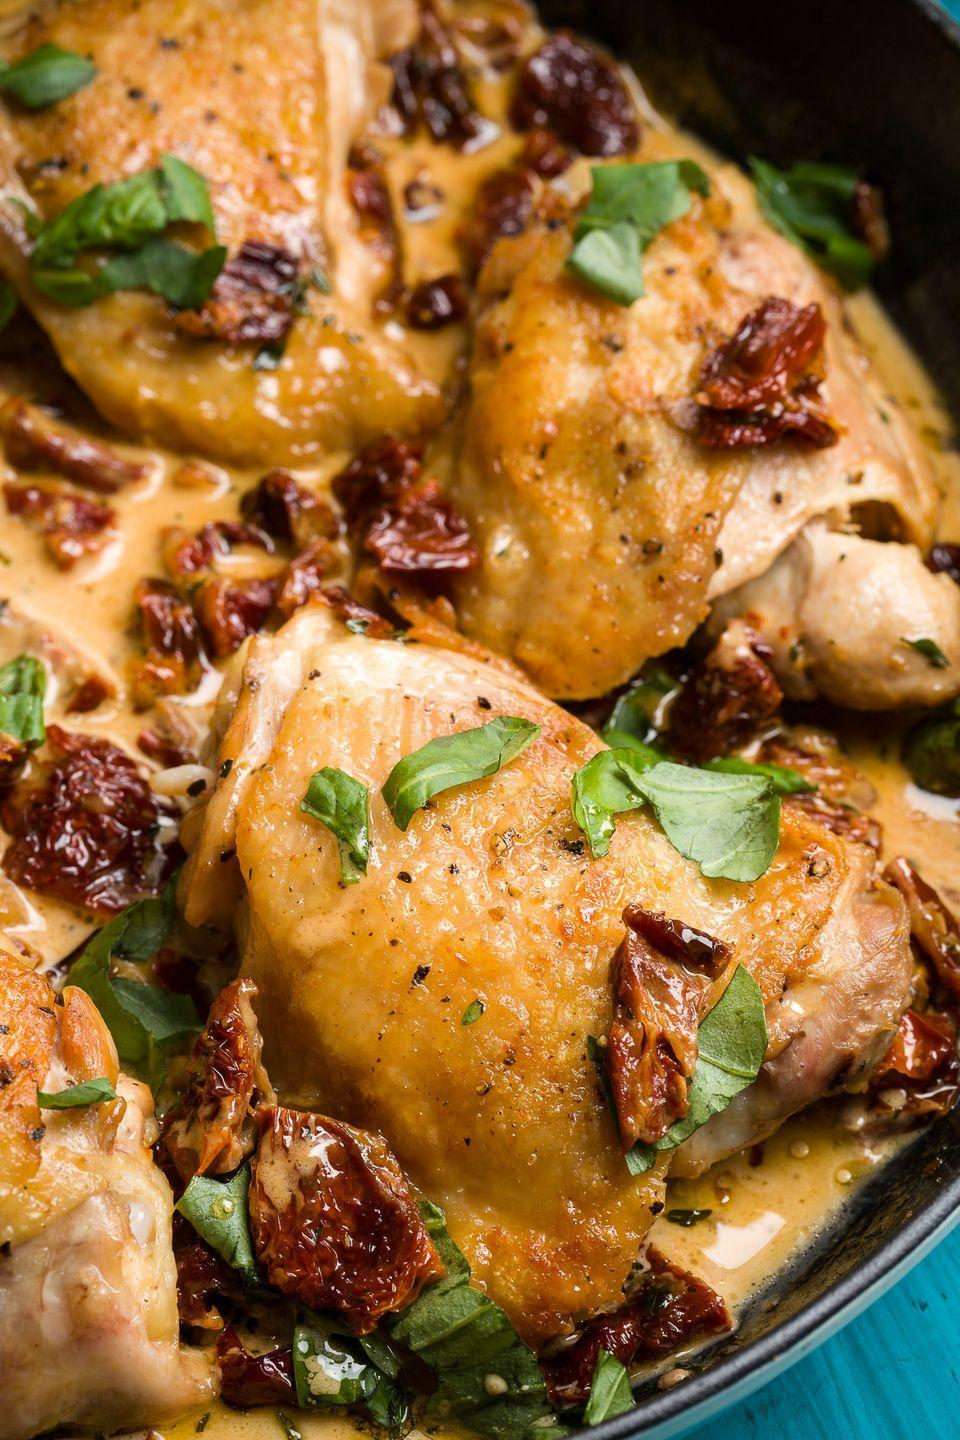 "<p>Proof a killer cream sauce is the way to the heart.</p><p>Get the recipe from <a href=""https://www.delish.com/cooking/recipe-ideas/recipes/a46330/skillet-sicilian-chicken-recipe/"" rel=""nofollow noopener"" target=""_blank"" data-ylk=""slk:Delish"" class=""link rapid-noclick-resp"">Delish</a>.</p>"